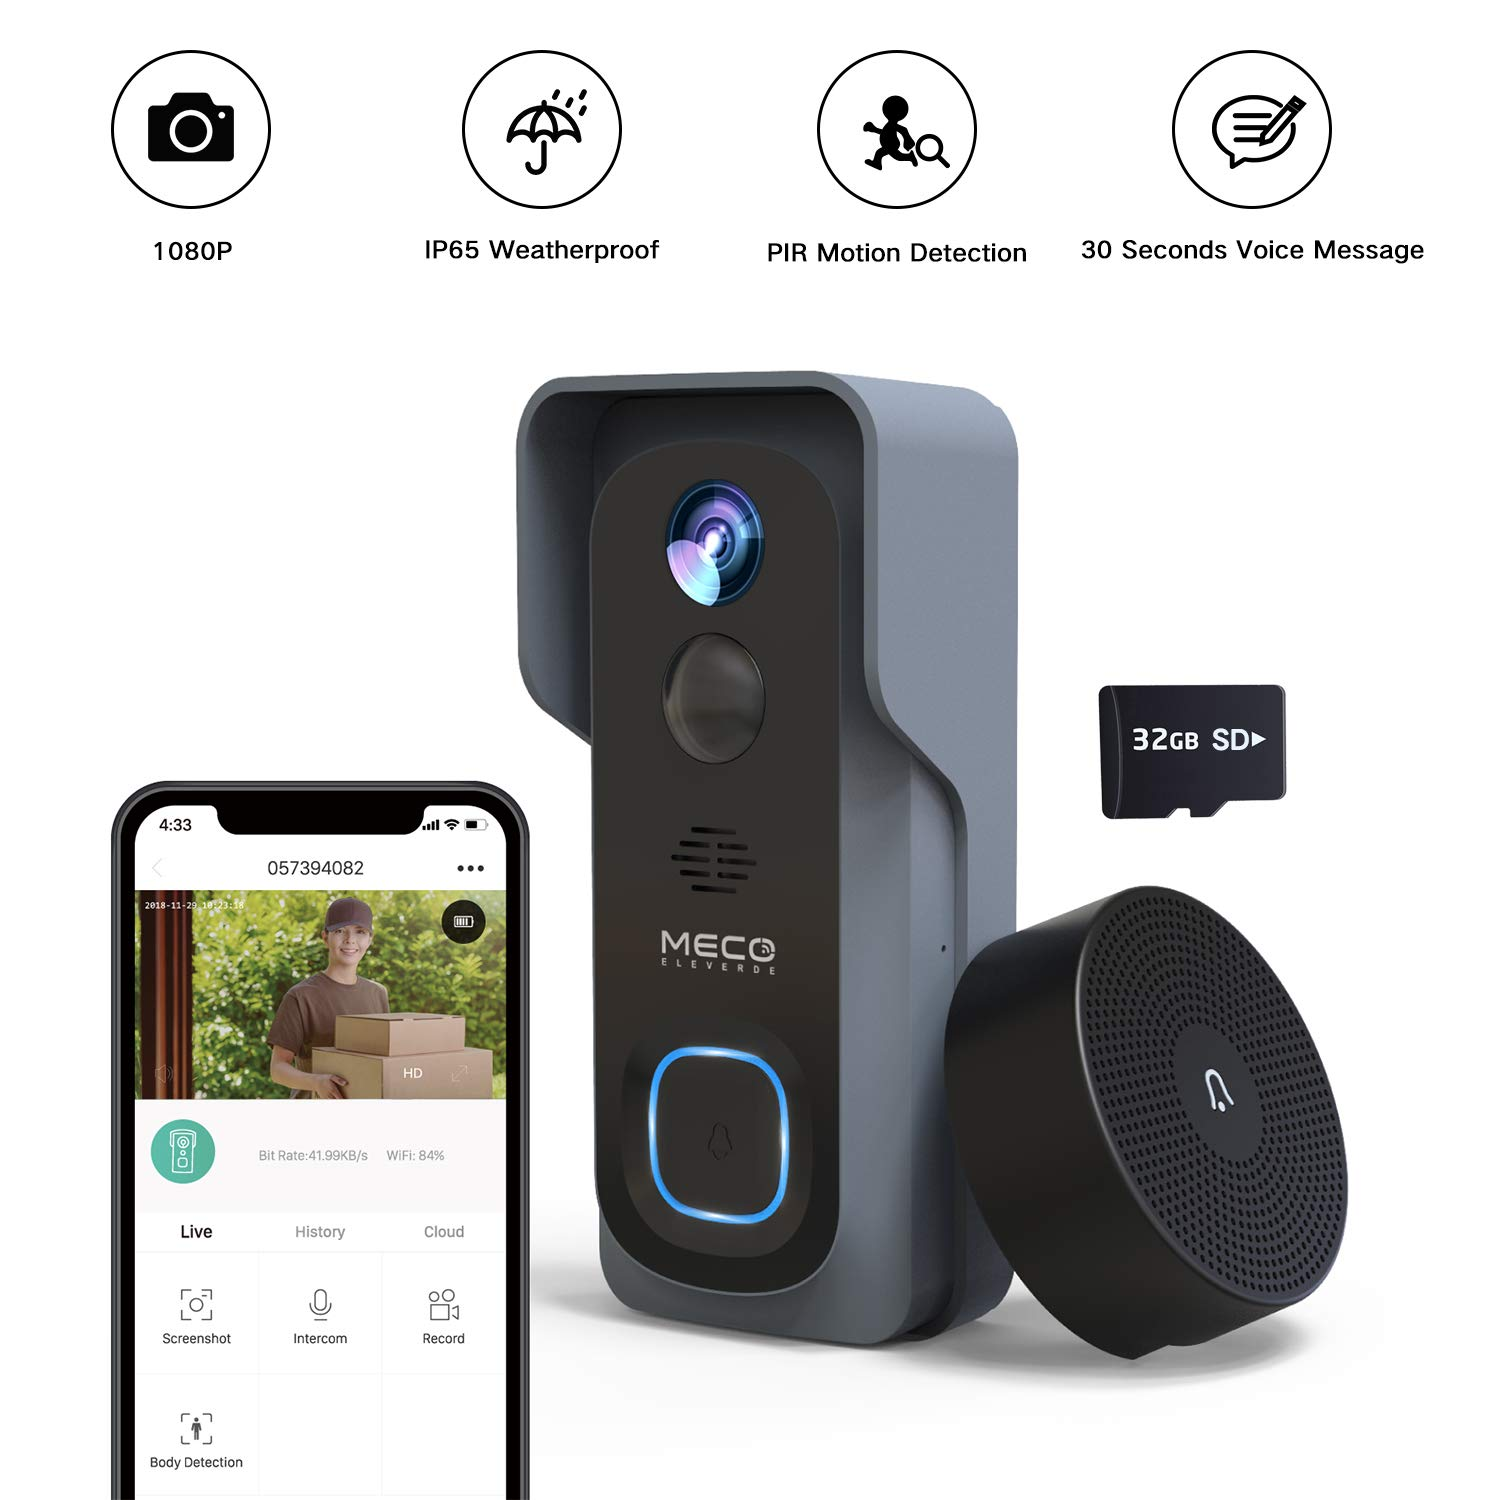 WiFi Video Doorbell,MECO 1080P Doorbell Camera with Ring Chime and 32GB SD Card, Wireless Doorbell with Motion Detector, Night Vision, IP65 Waterproof, Real-Time Notification, 2-Way Audio, 2.4GHz WiFi by MECO